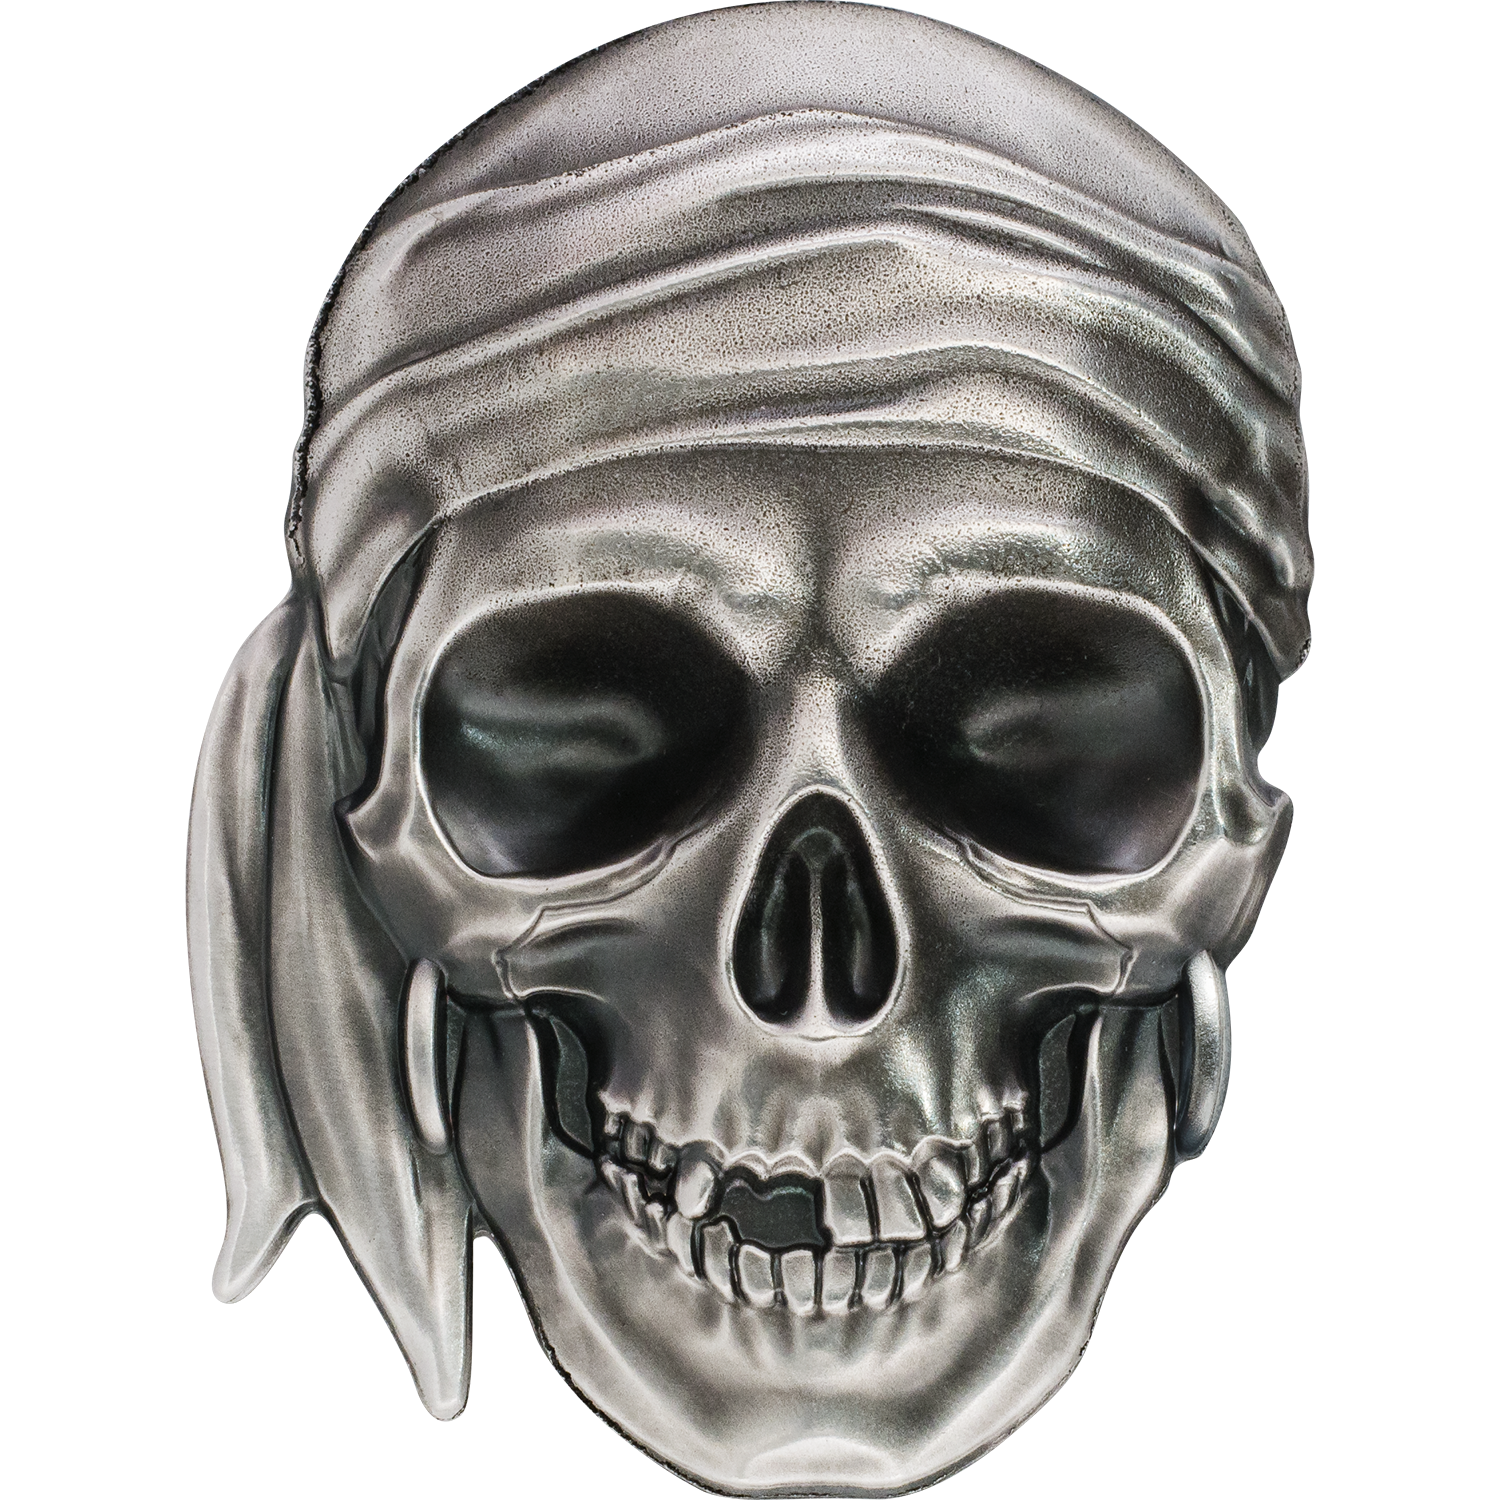 Pirate Skull silver coin with smartminting relief